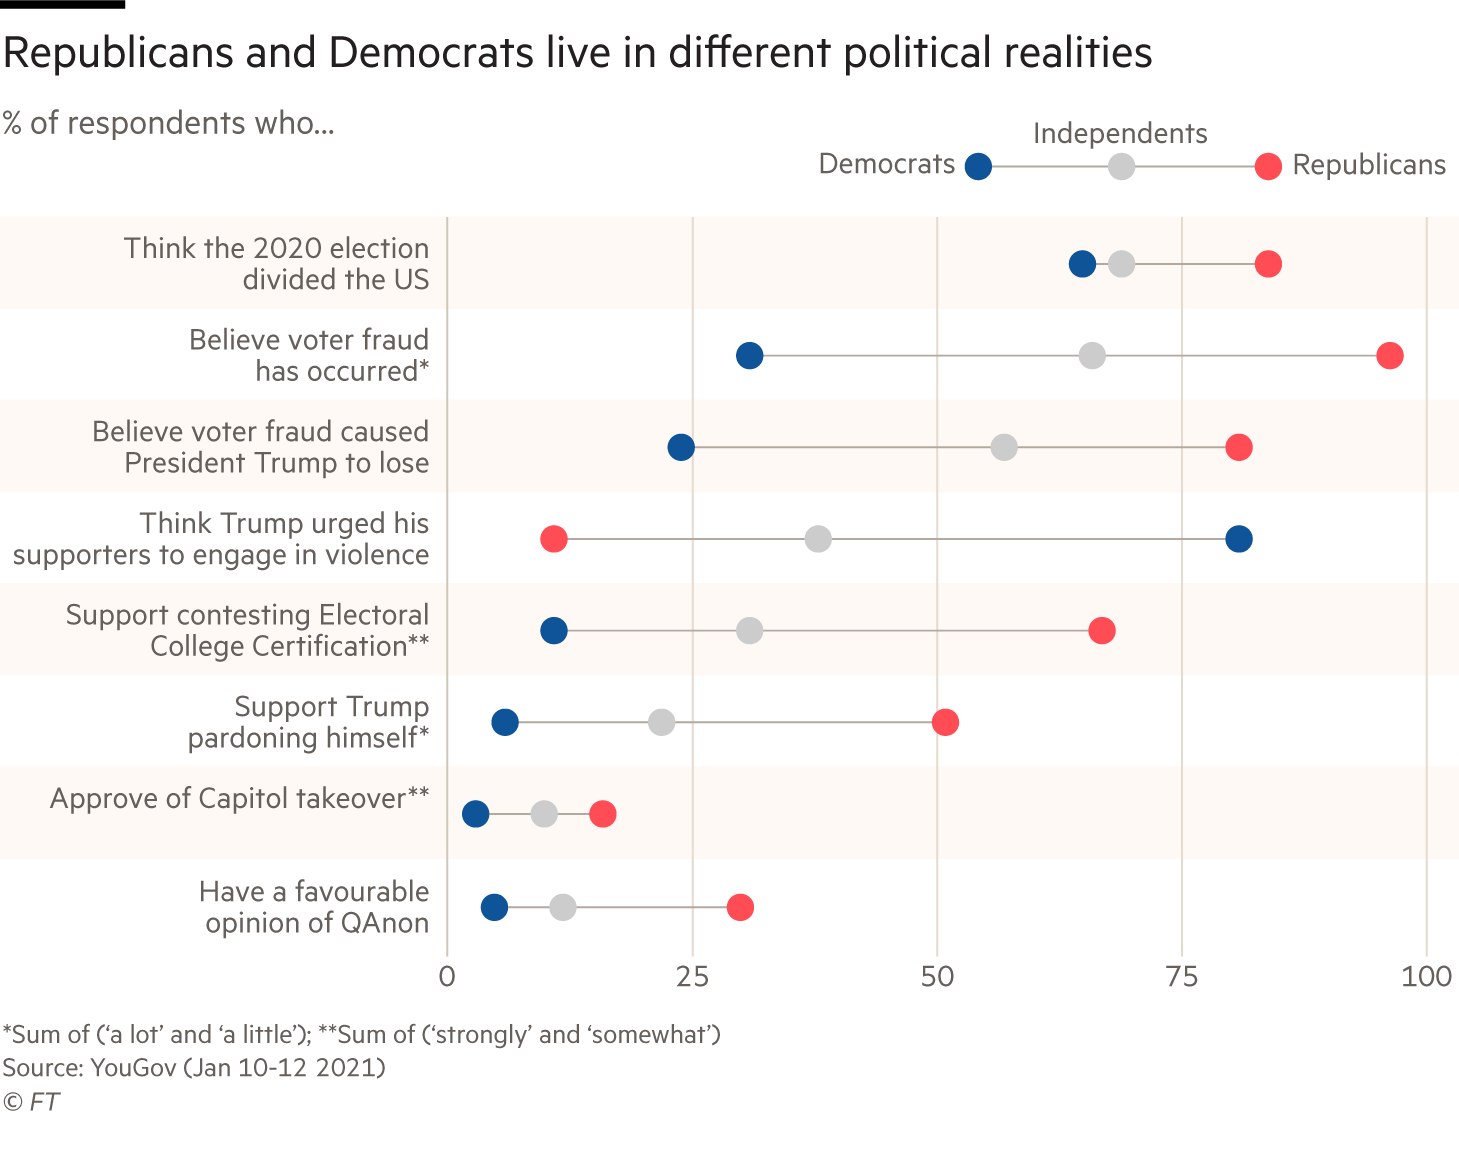 Republicans and Democrats live in different political realities. Chart showing % of respondents by political affiliation who ... Have a favourable opinion of QAnon Approve of Capitol takeover Support Trump pardoning himself Support contesting Electoral College Certification Think Trump urged his supporters to engage in violence Believe voter fraud caused President Trump to lose Believe voter fraud has occurred*Think the 2020 election divided the US